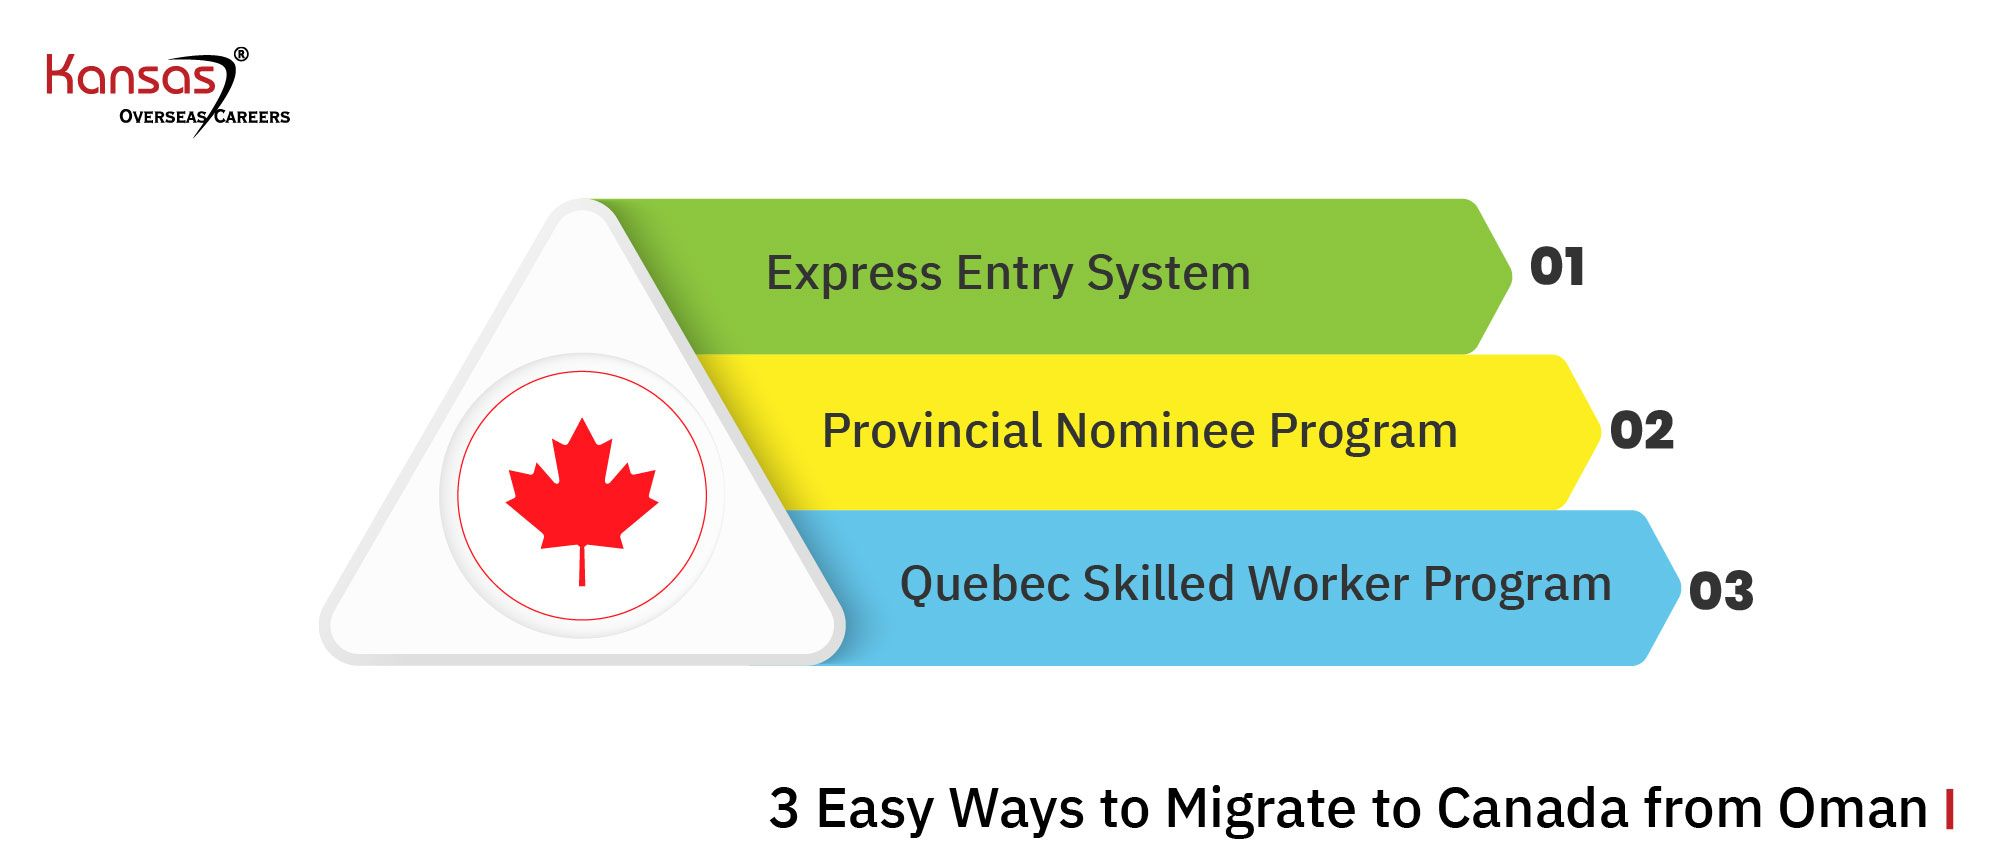 3-Easy-Ways-to-Migrate-to-Canada-from-Oman-(Apply-for-Canada-PR)-1